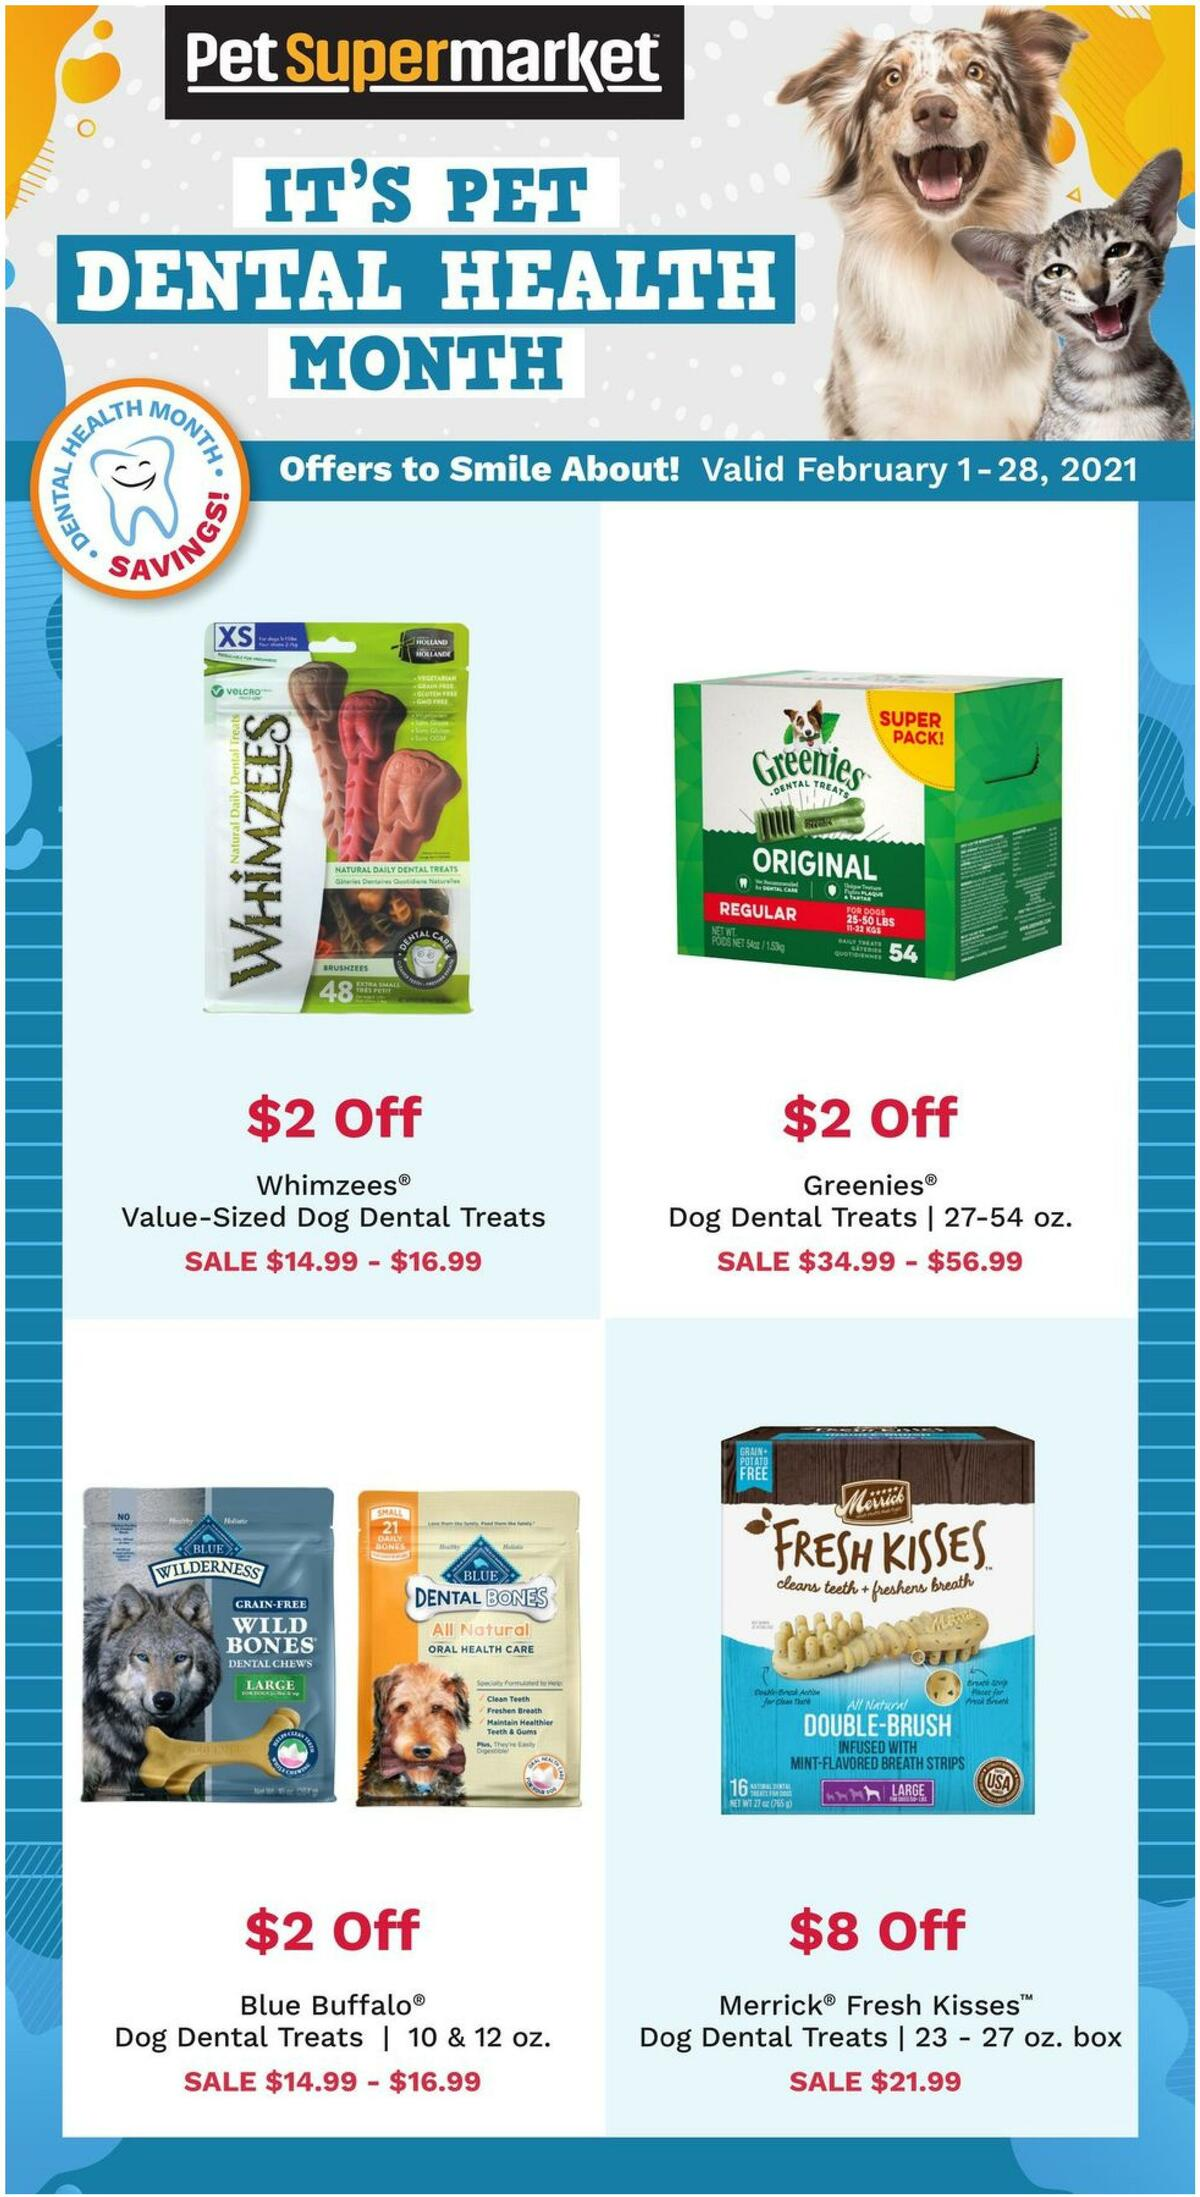 Pet Supermarket Dental Month Weekly Ad from February 1